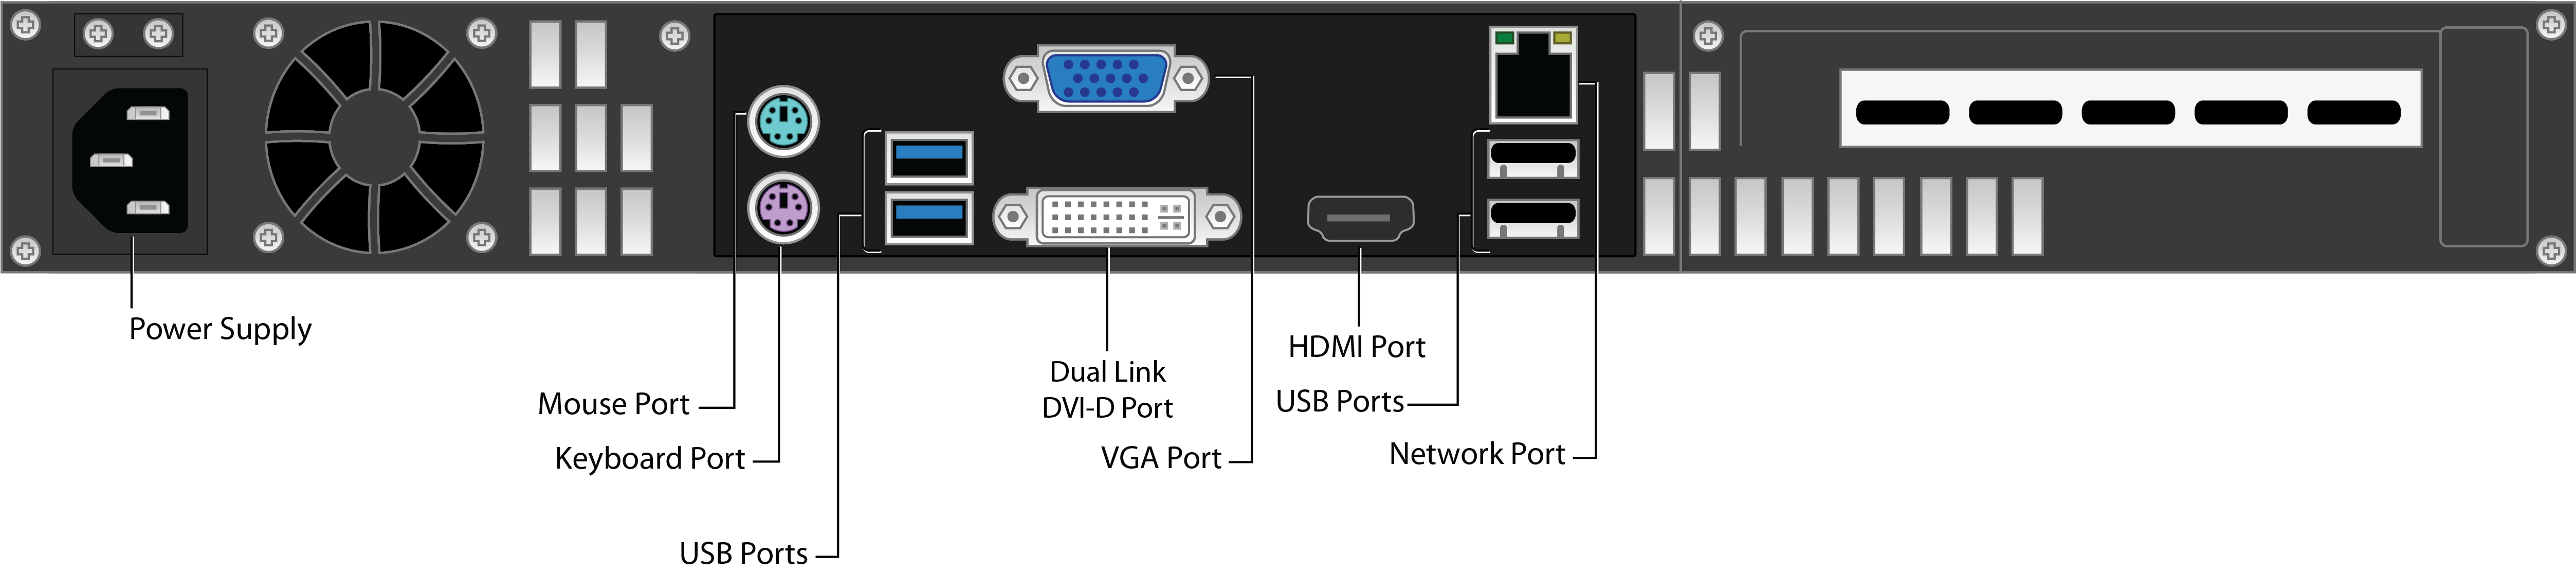 Dorable Usb Connection Diagram Image - Best Images for wiring ...